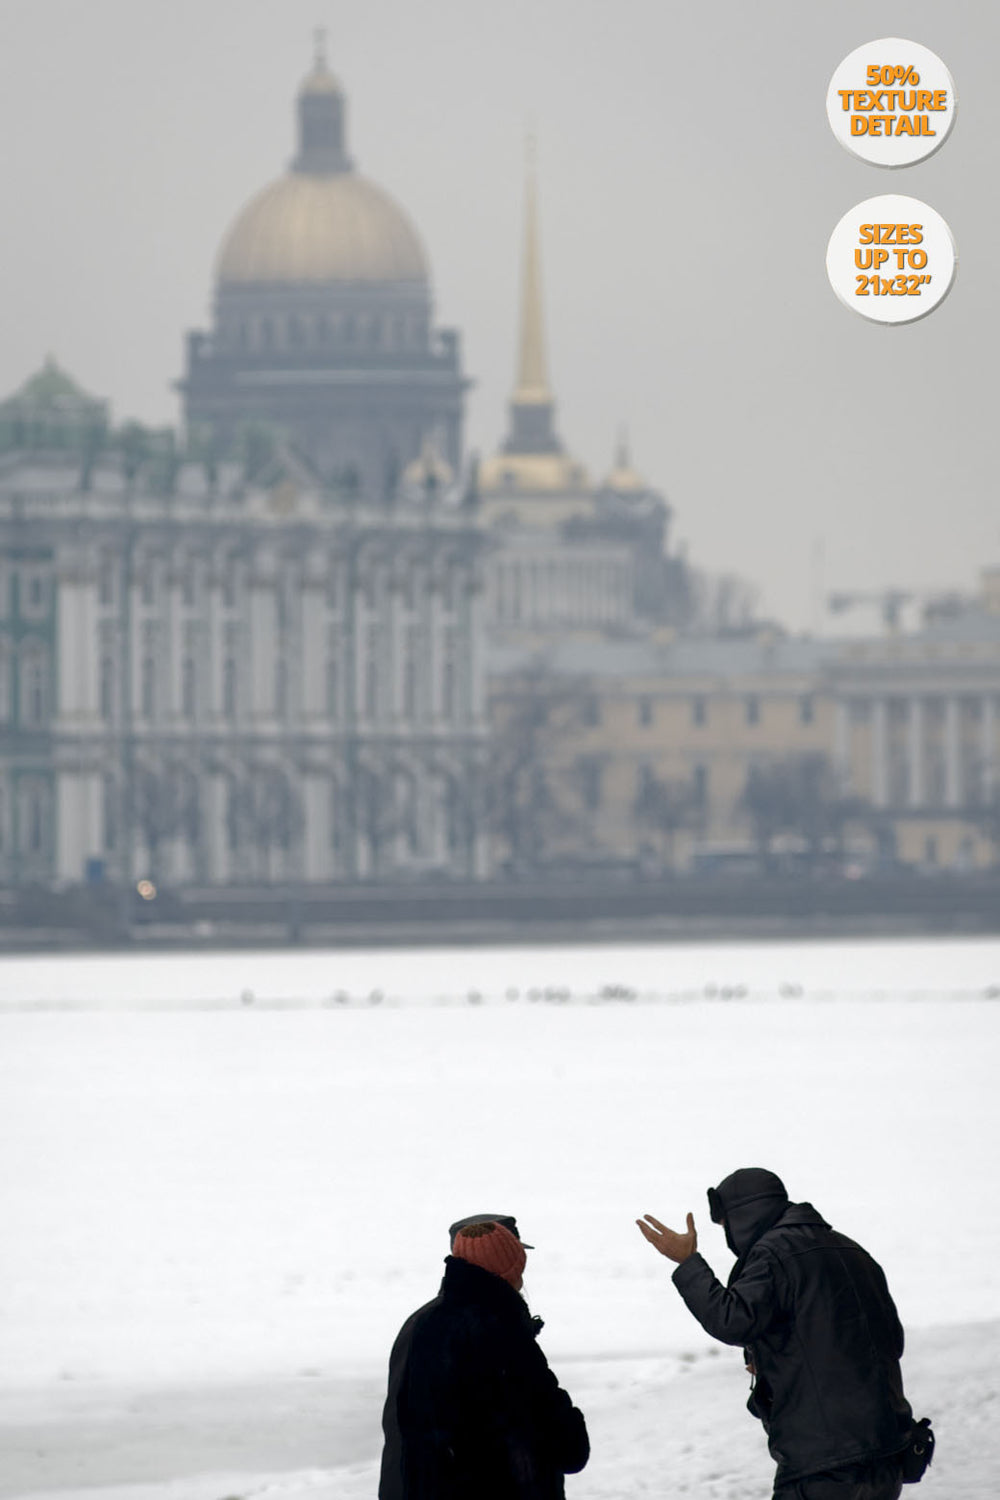 Pedestrians chatting over Frozen Neva River, St. Petersbourg. | 50% Print Detail.